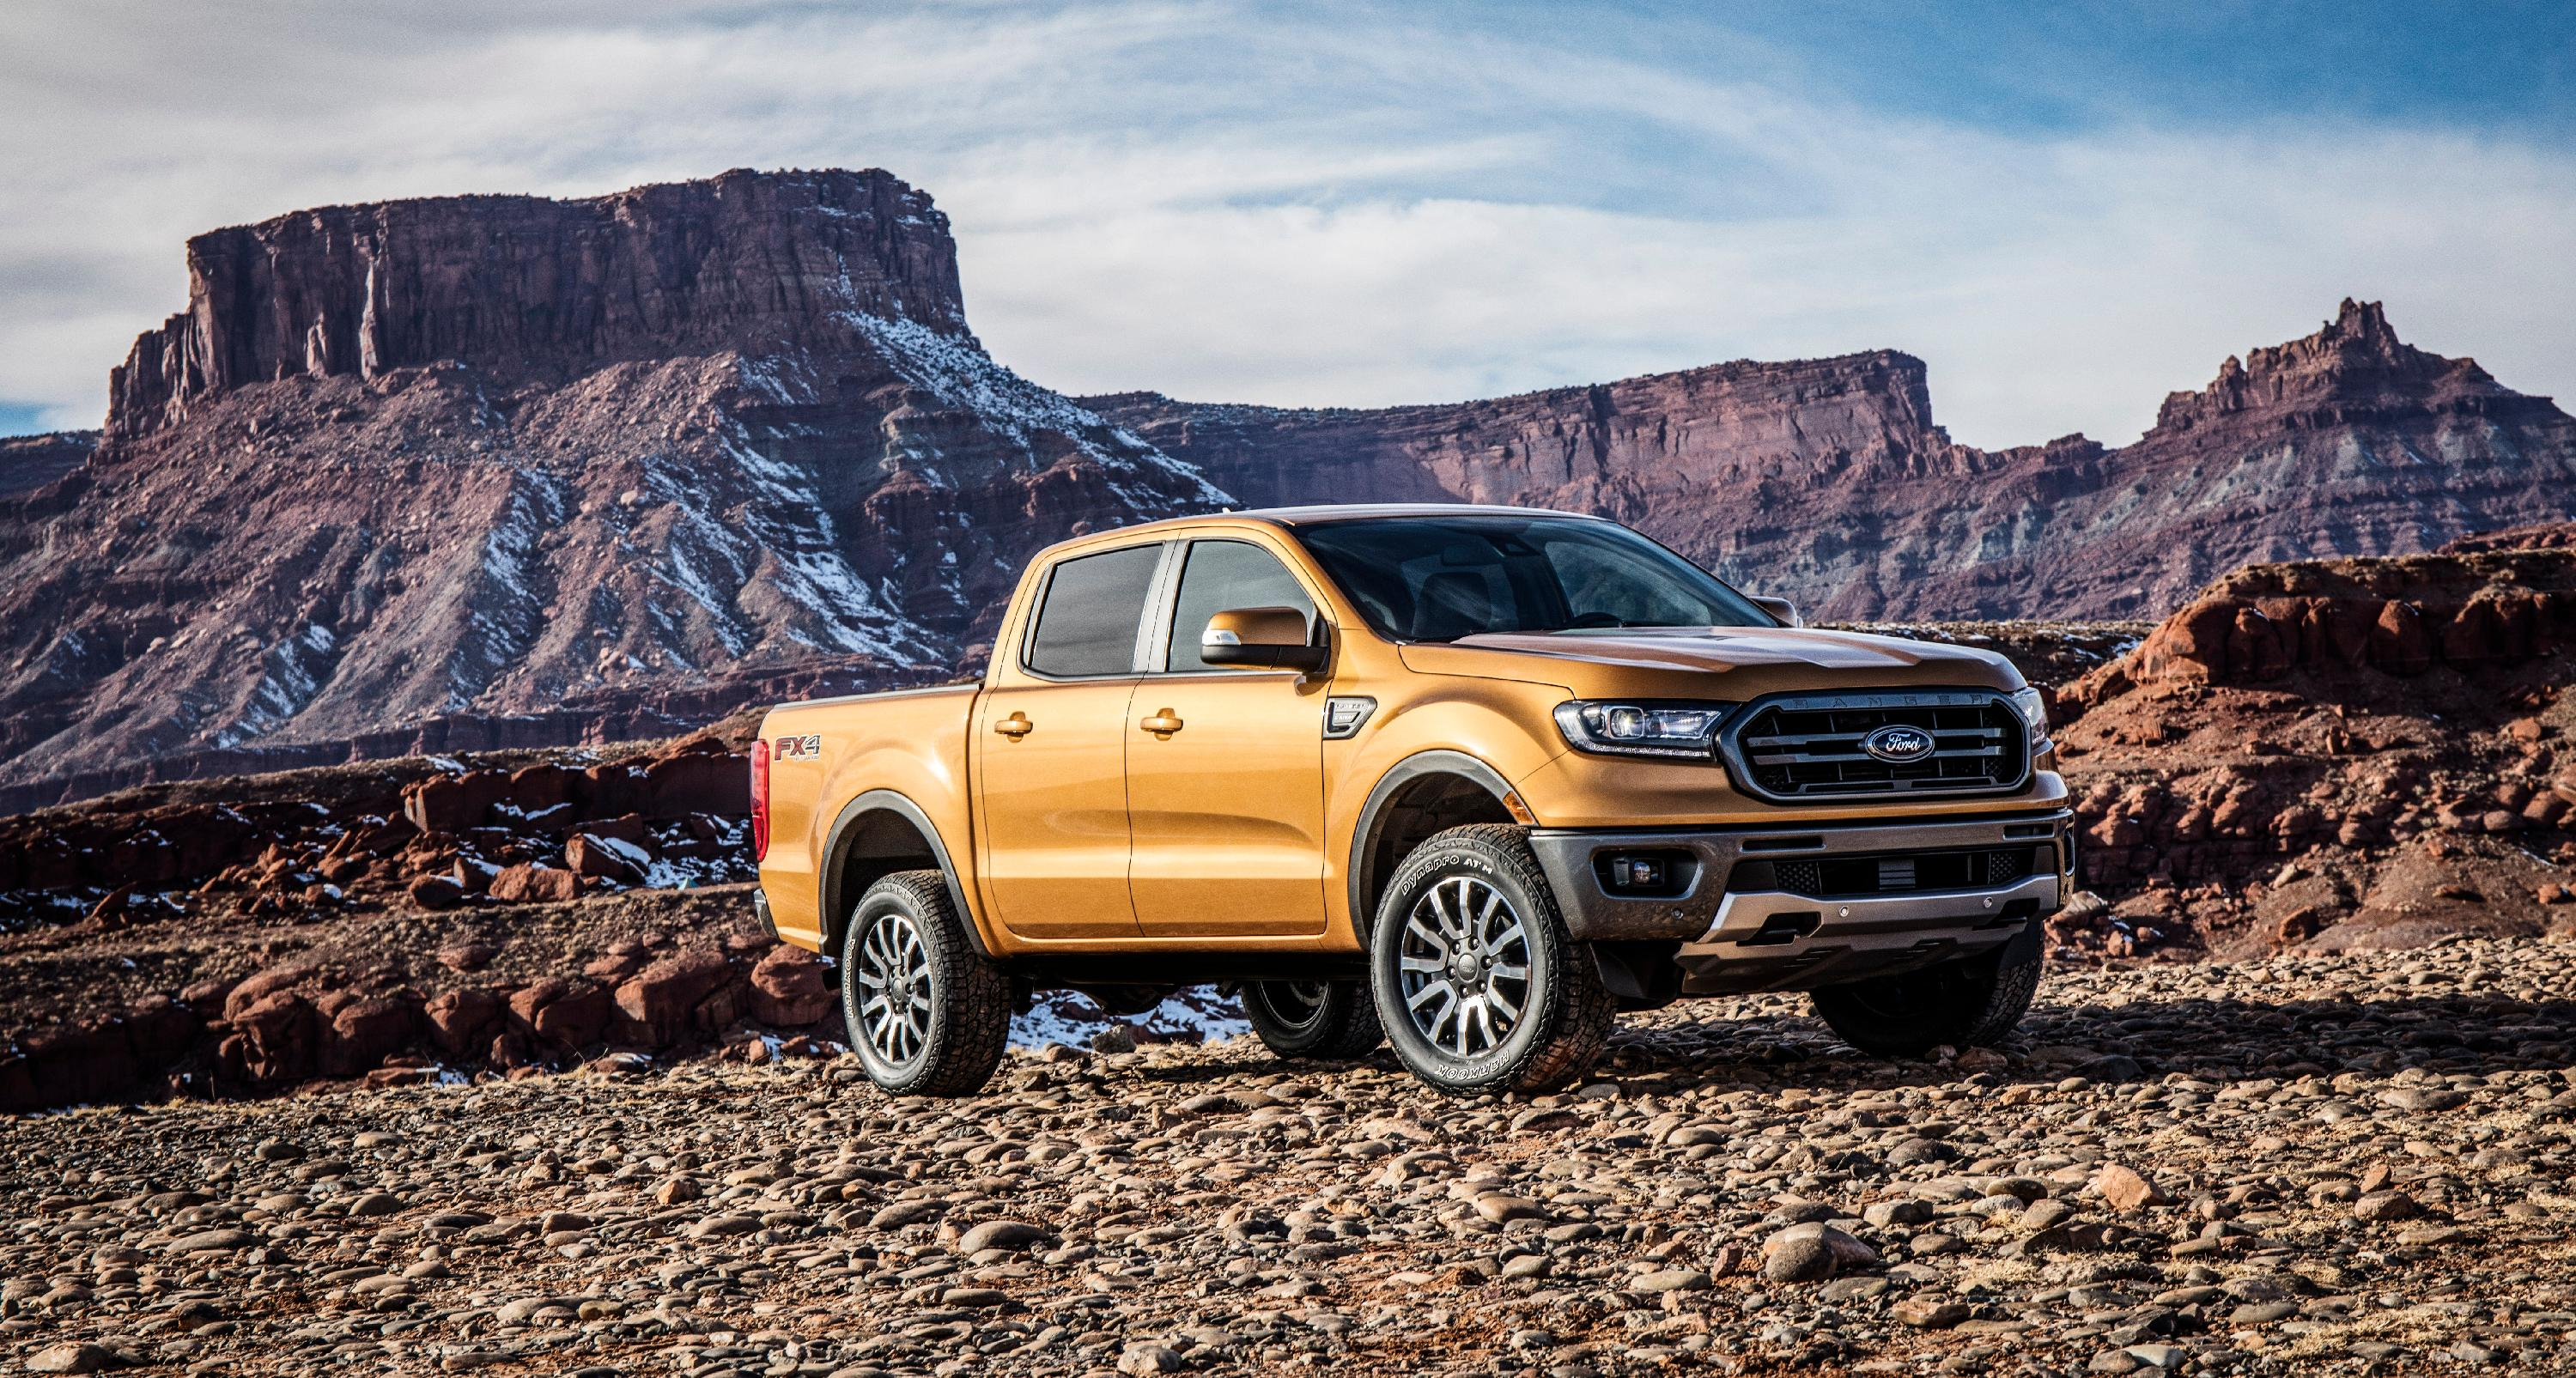 New Ford Ranger. Source: Ford